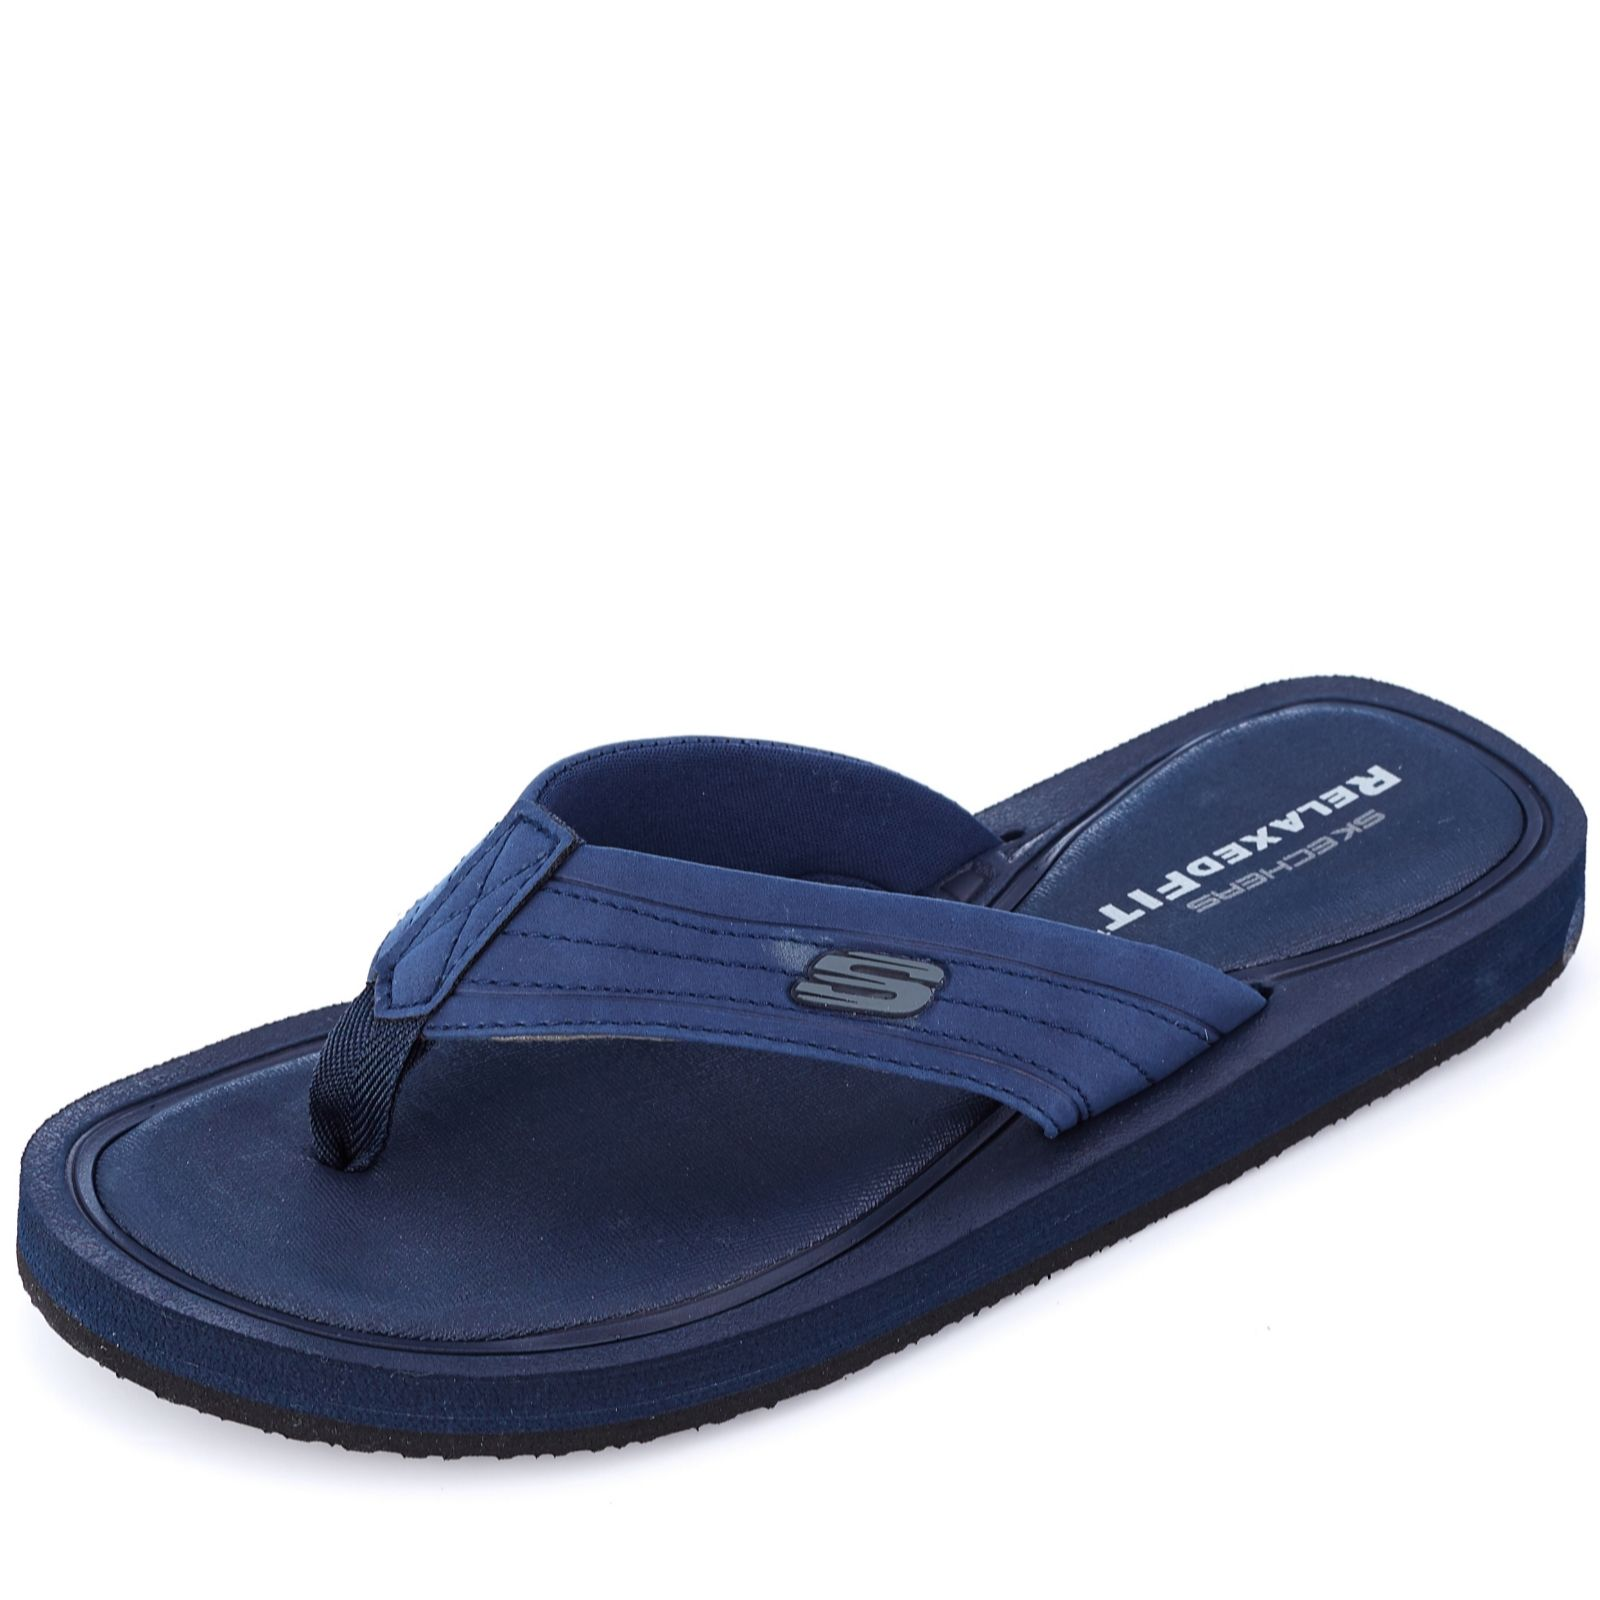 skechers relaxed fit memory foam flip flops